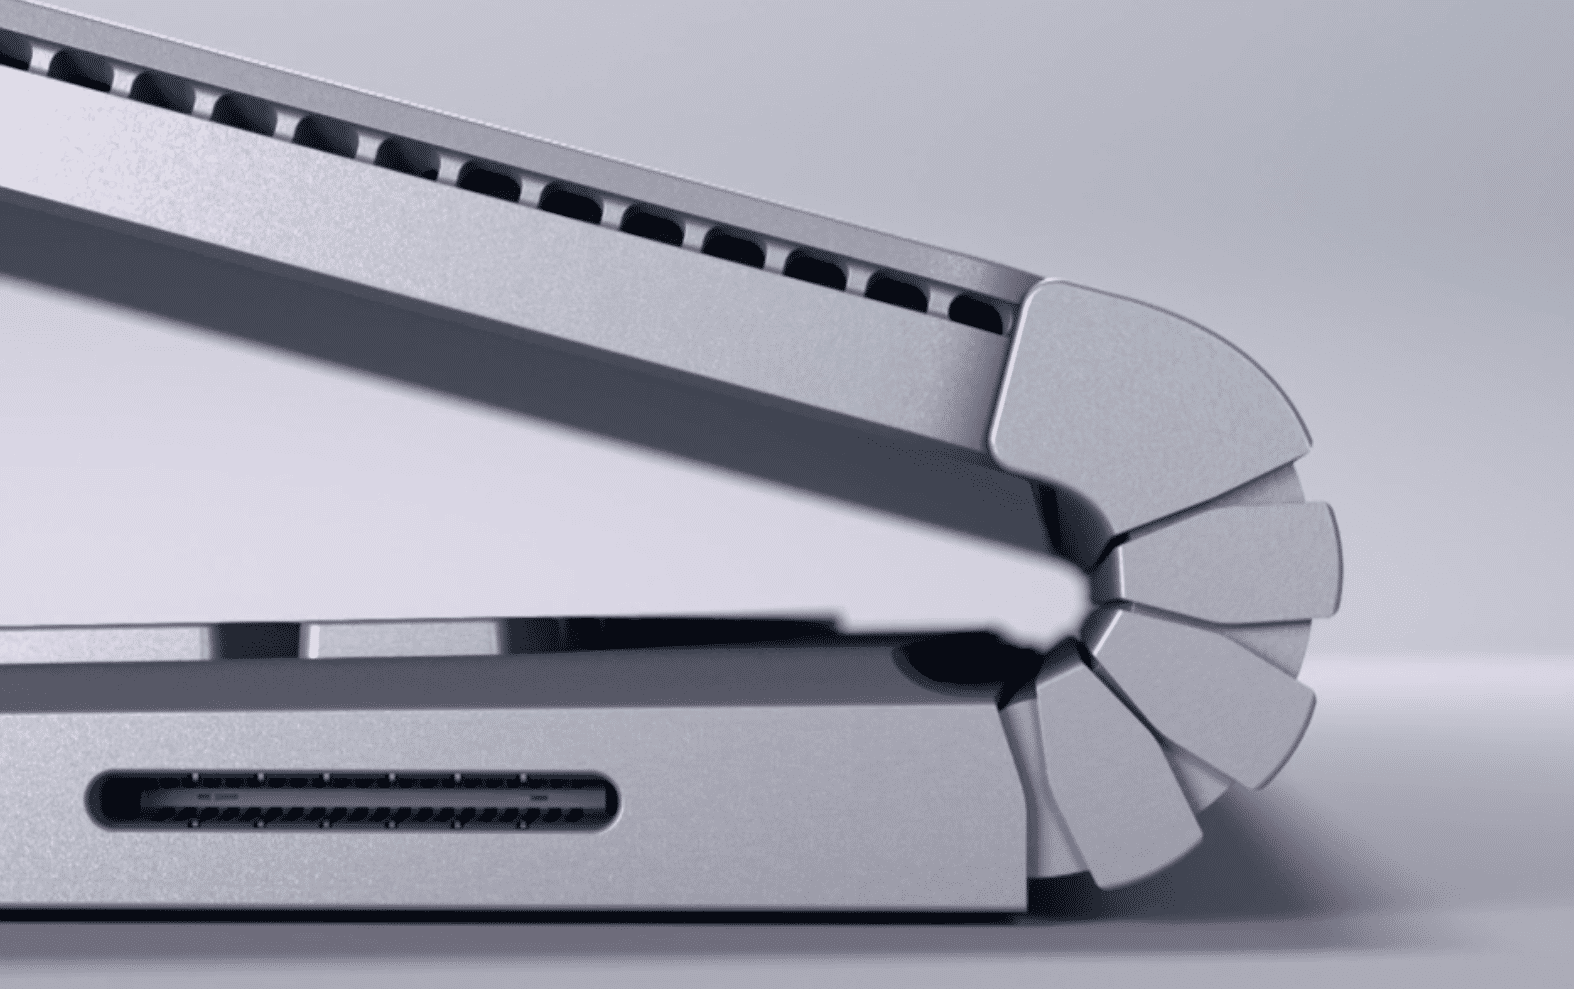 surface-book-hinge-100620082-orig.png